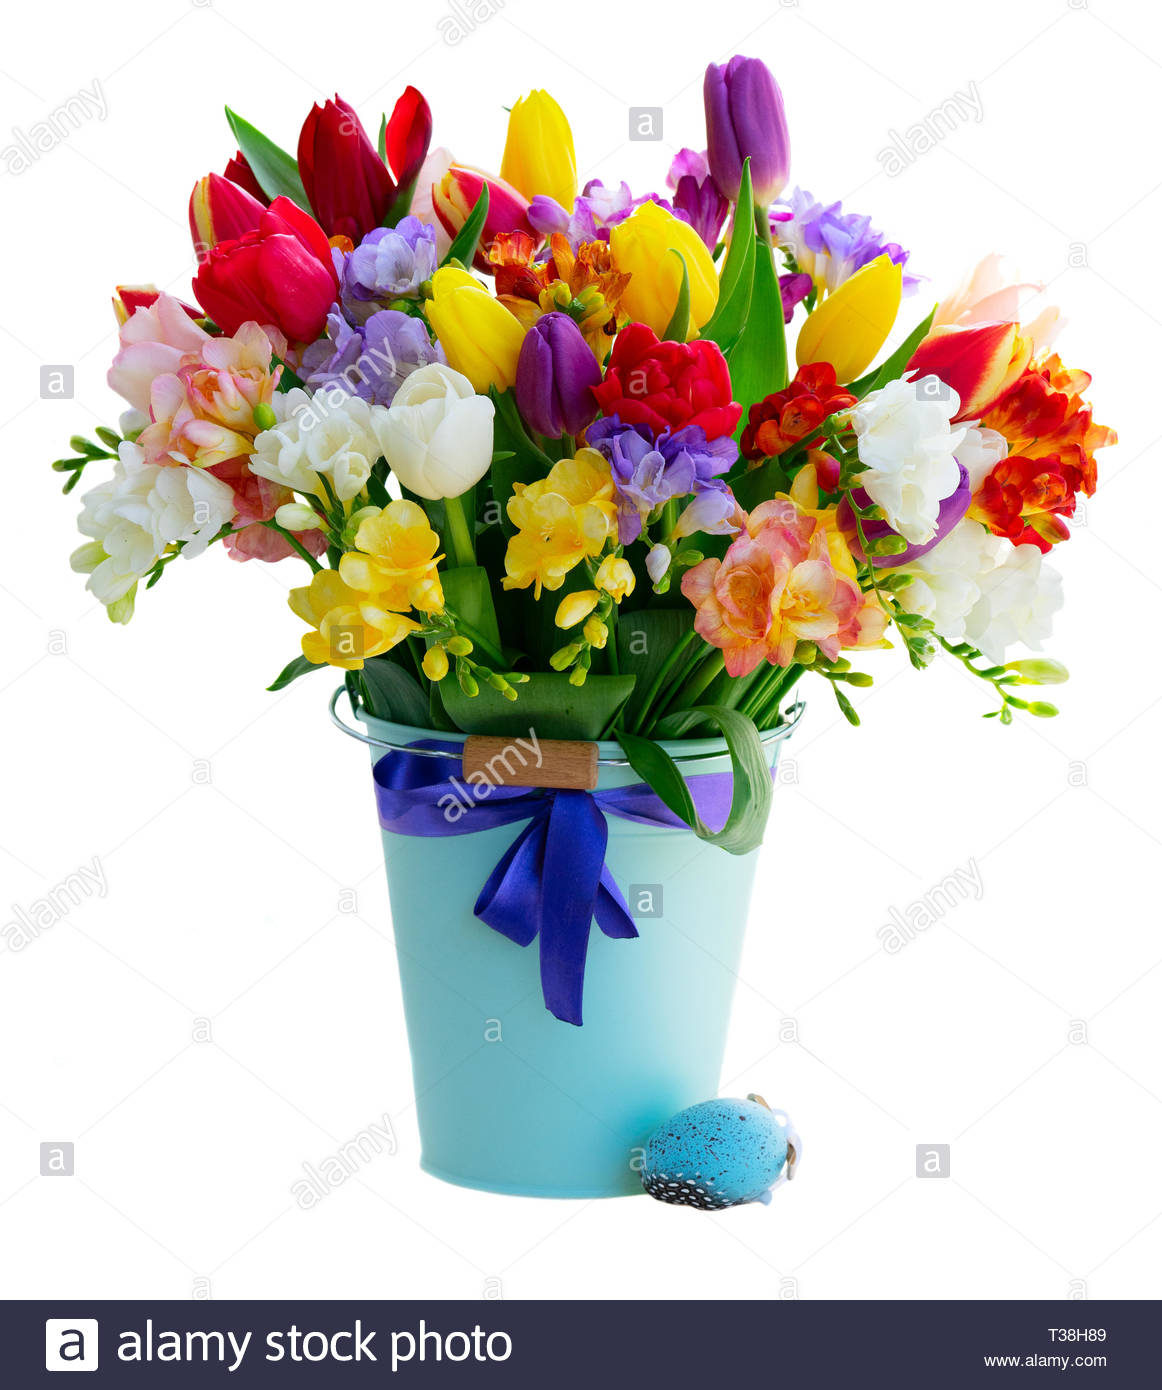 Bouquet of tulips and freesias flowers in bucket isolated on white 1162x1390